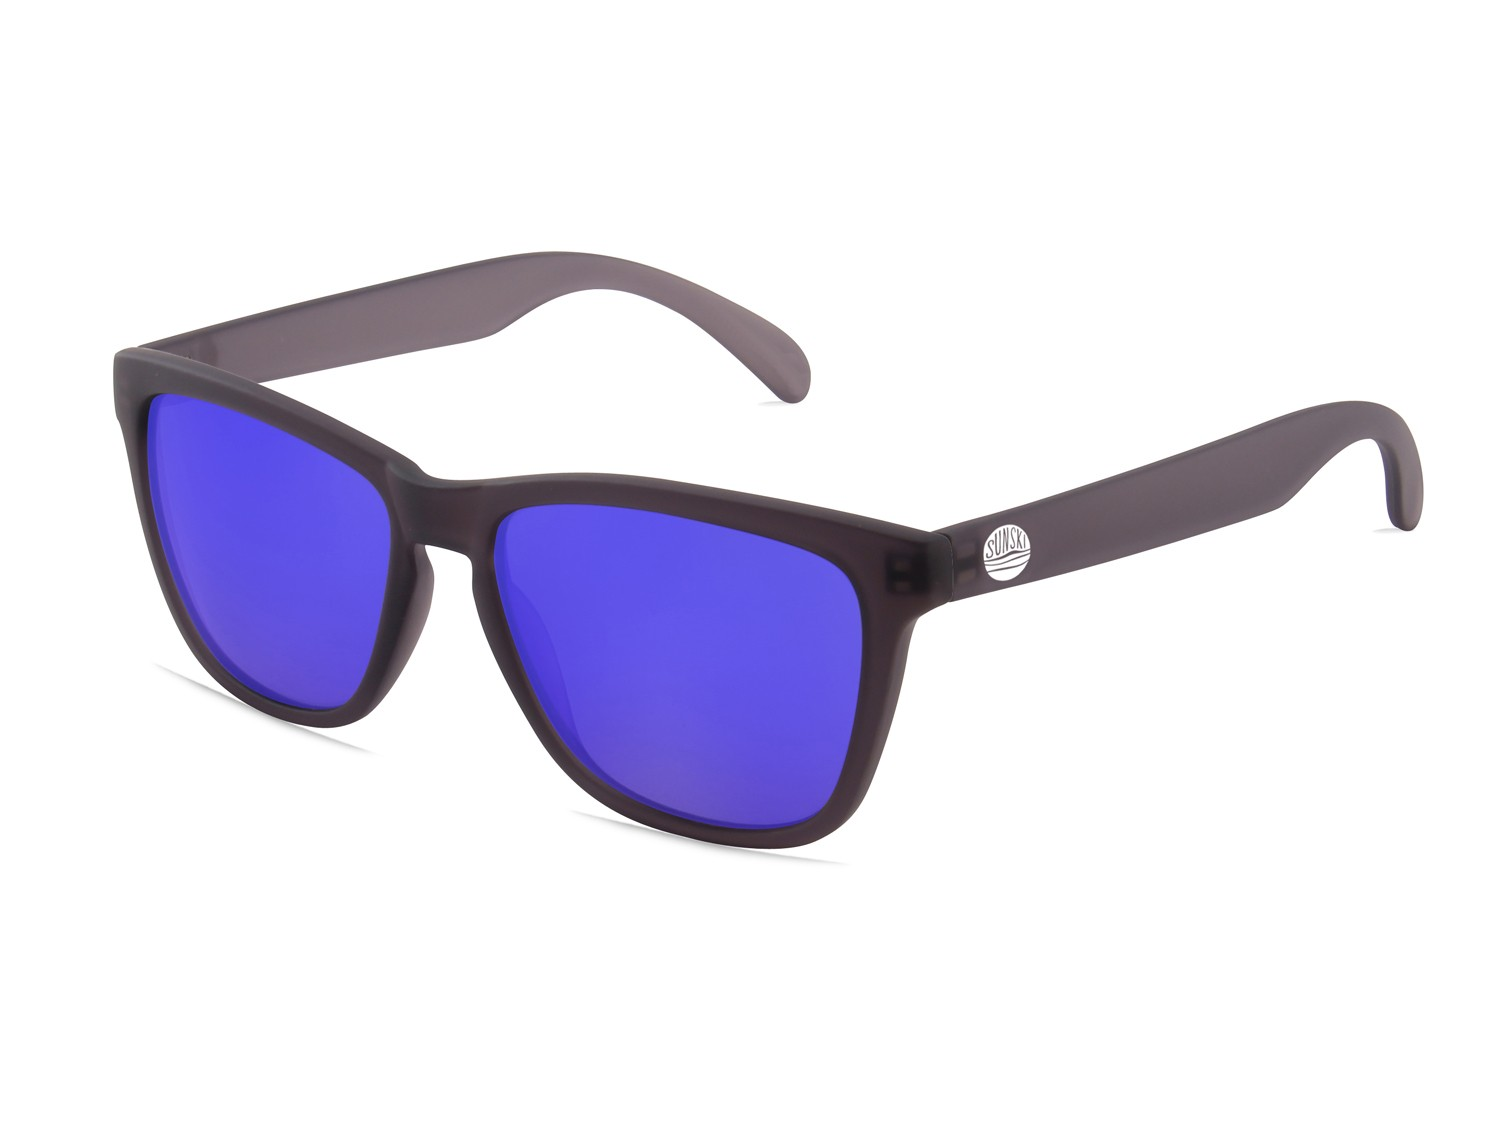 049c7a1b33 Sunski Headlands - Blue - Sunskis by Farai